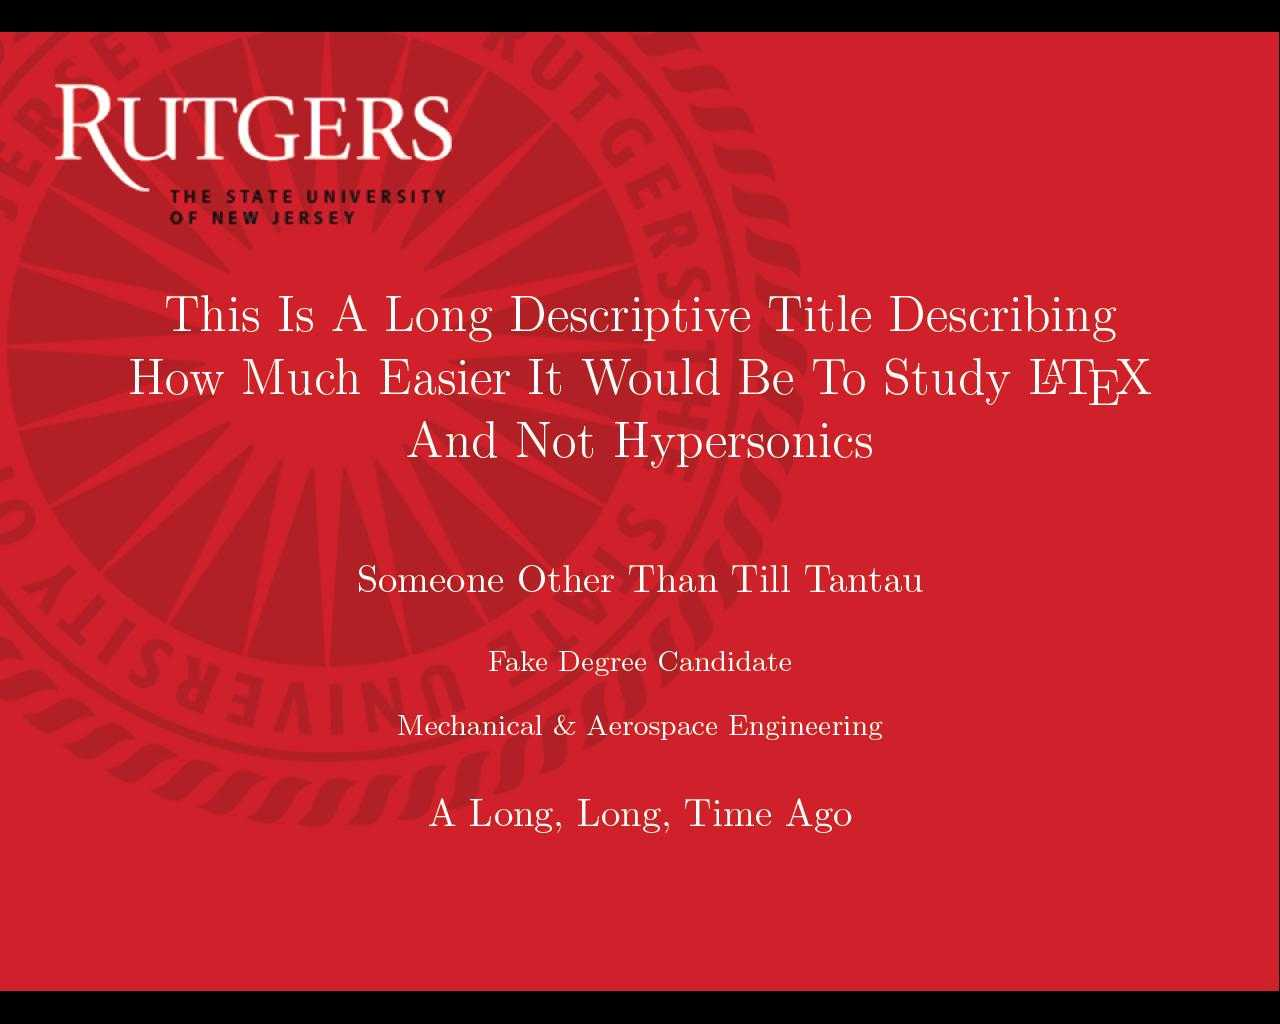 Can I Specify Title Page Customization In A Template Instead Throughout Rutgers Powerpoint Template